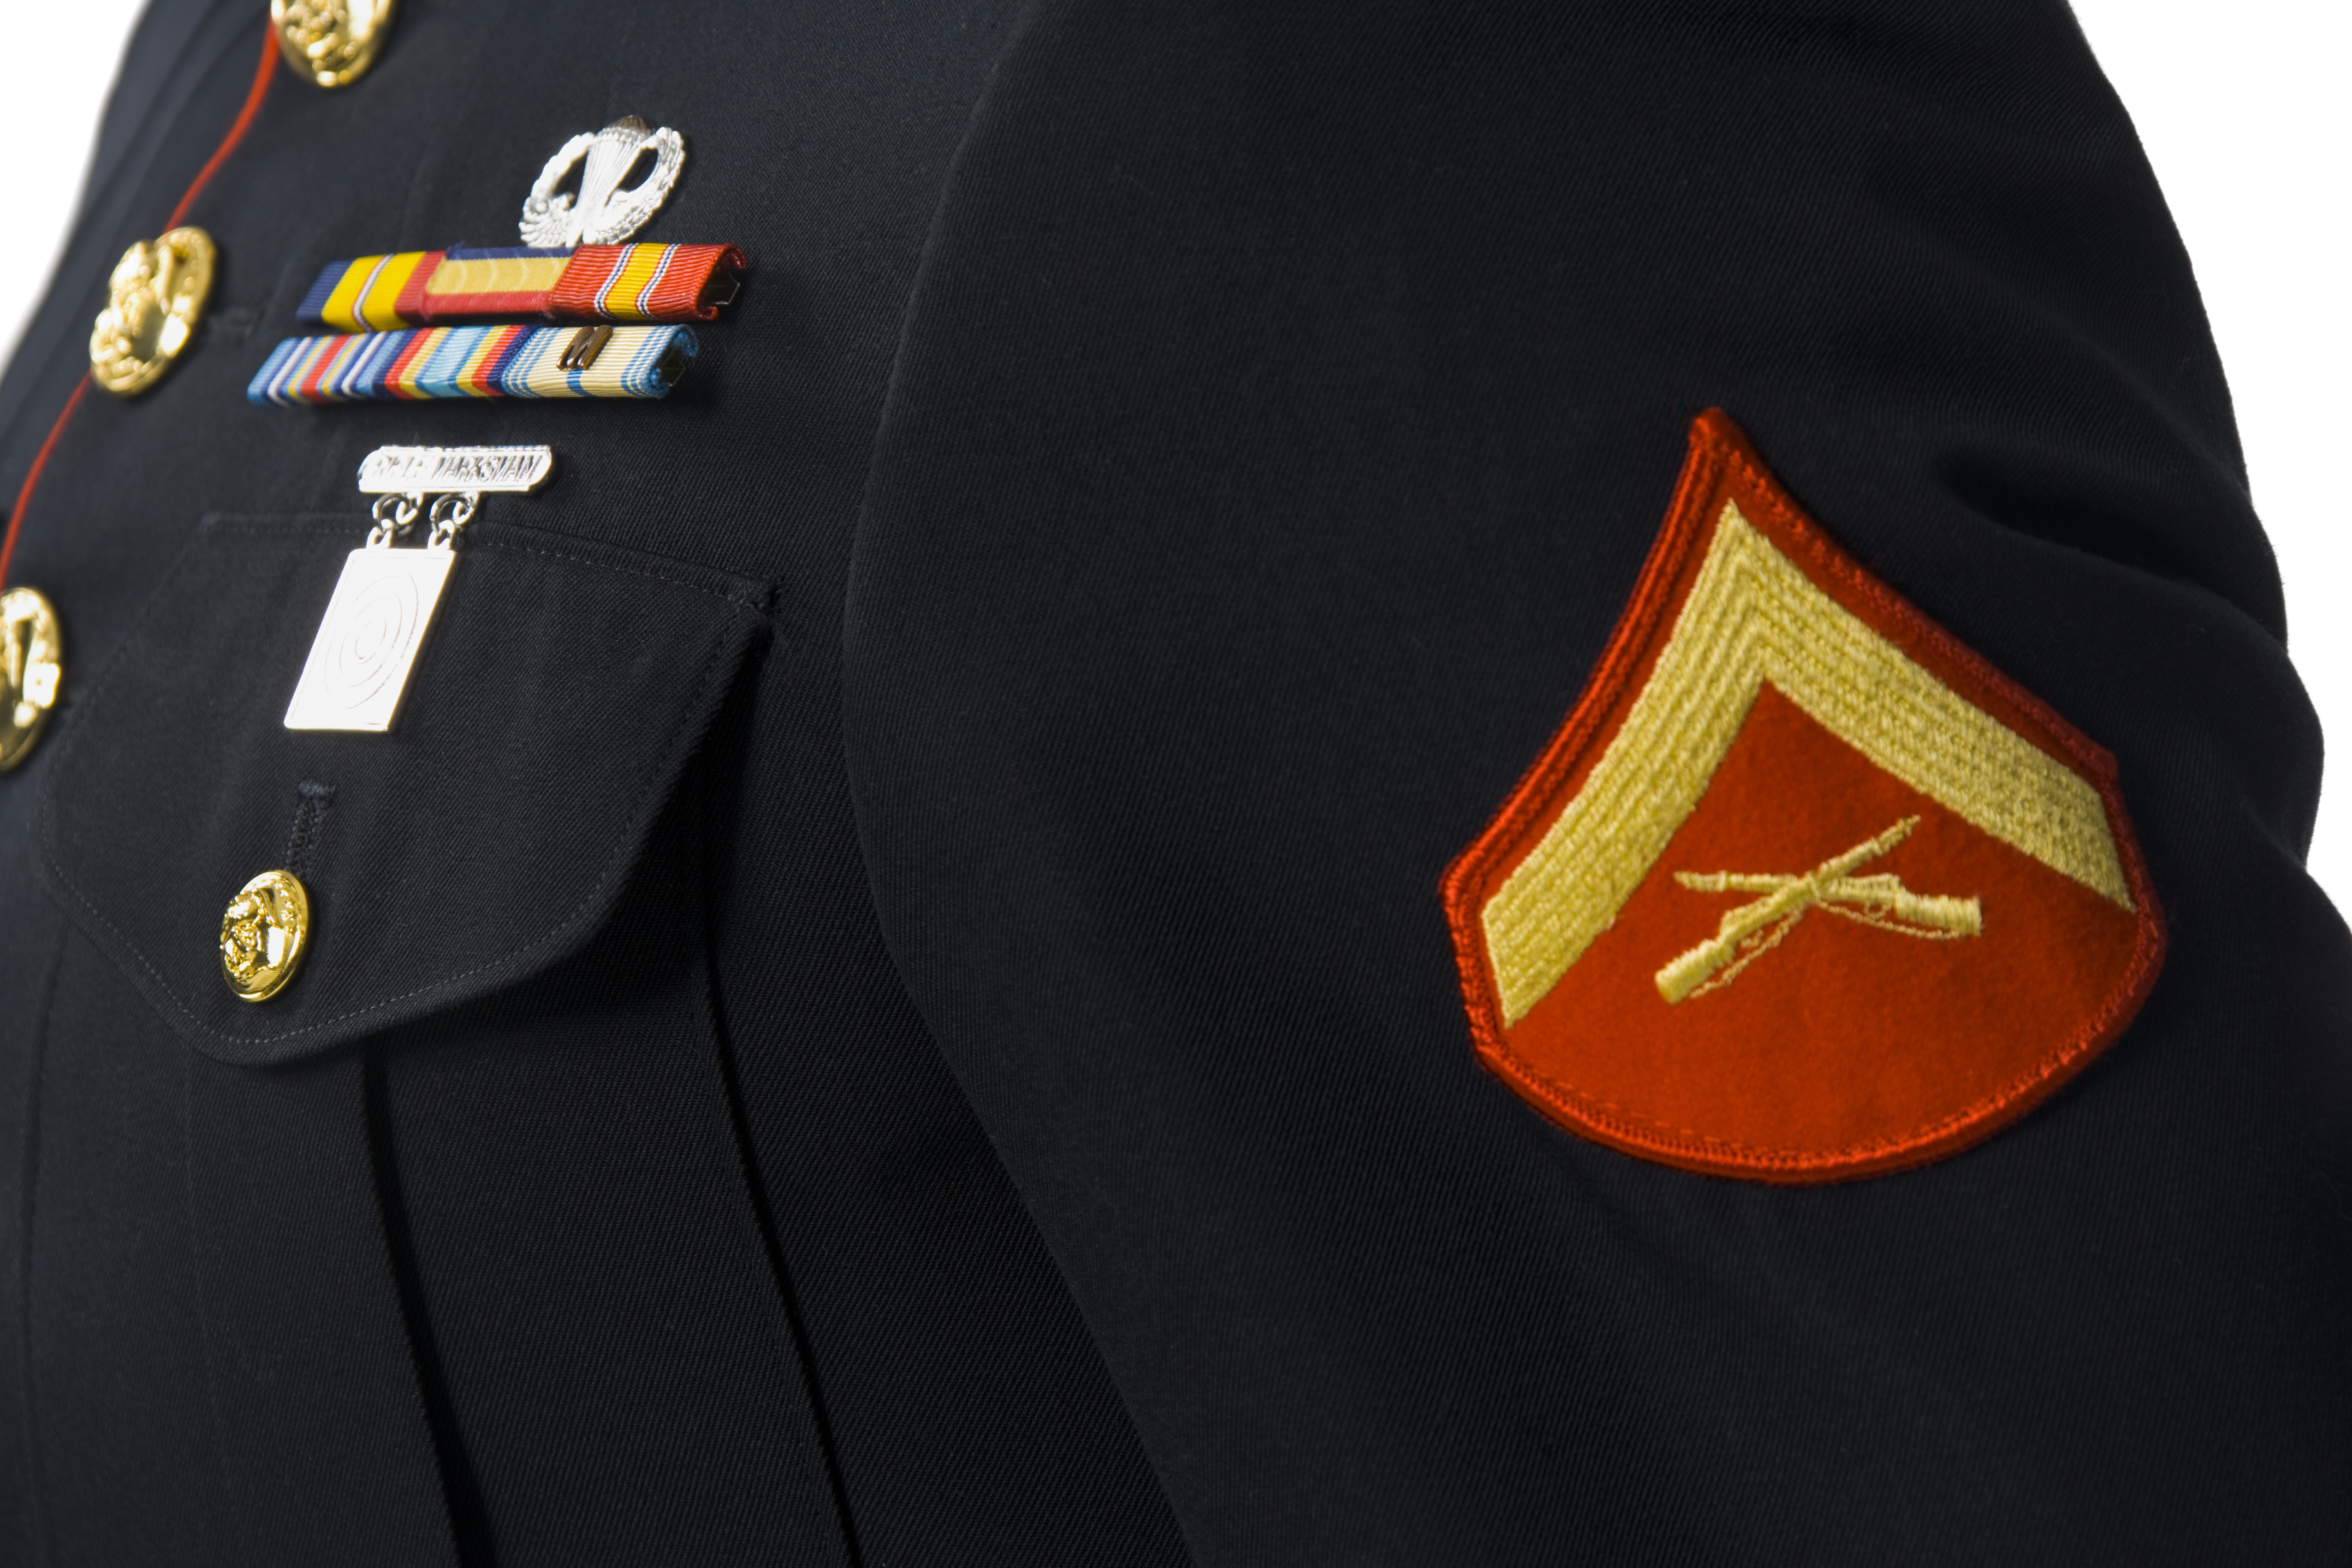 How to Convert Military Rank to Federal Civil Service